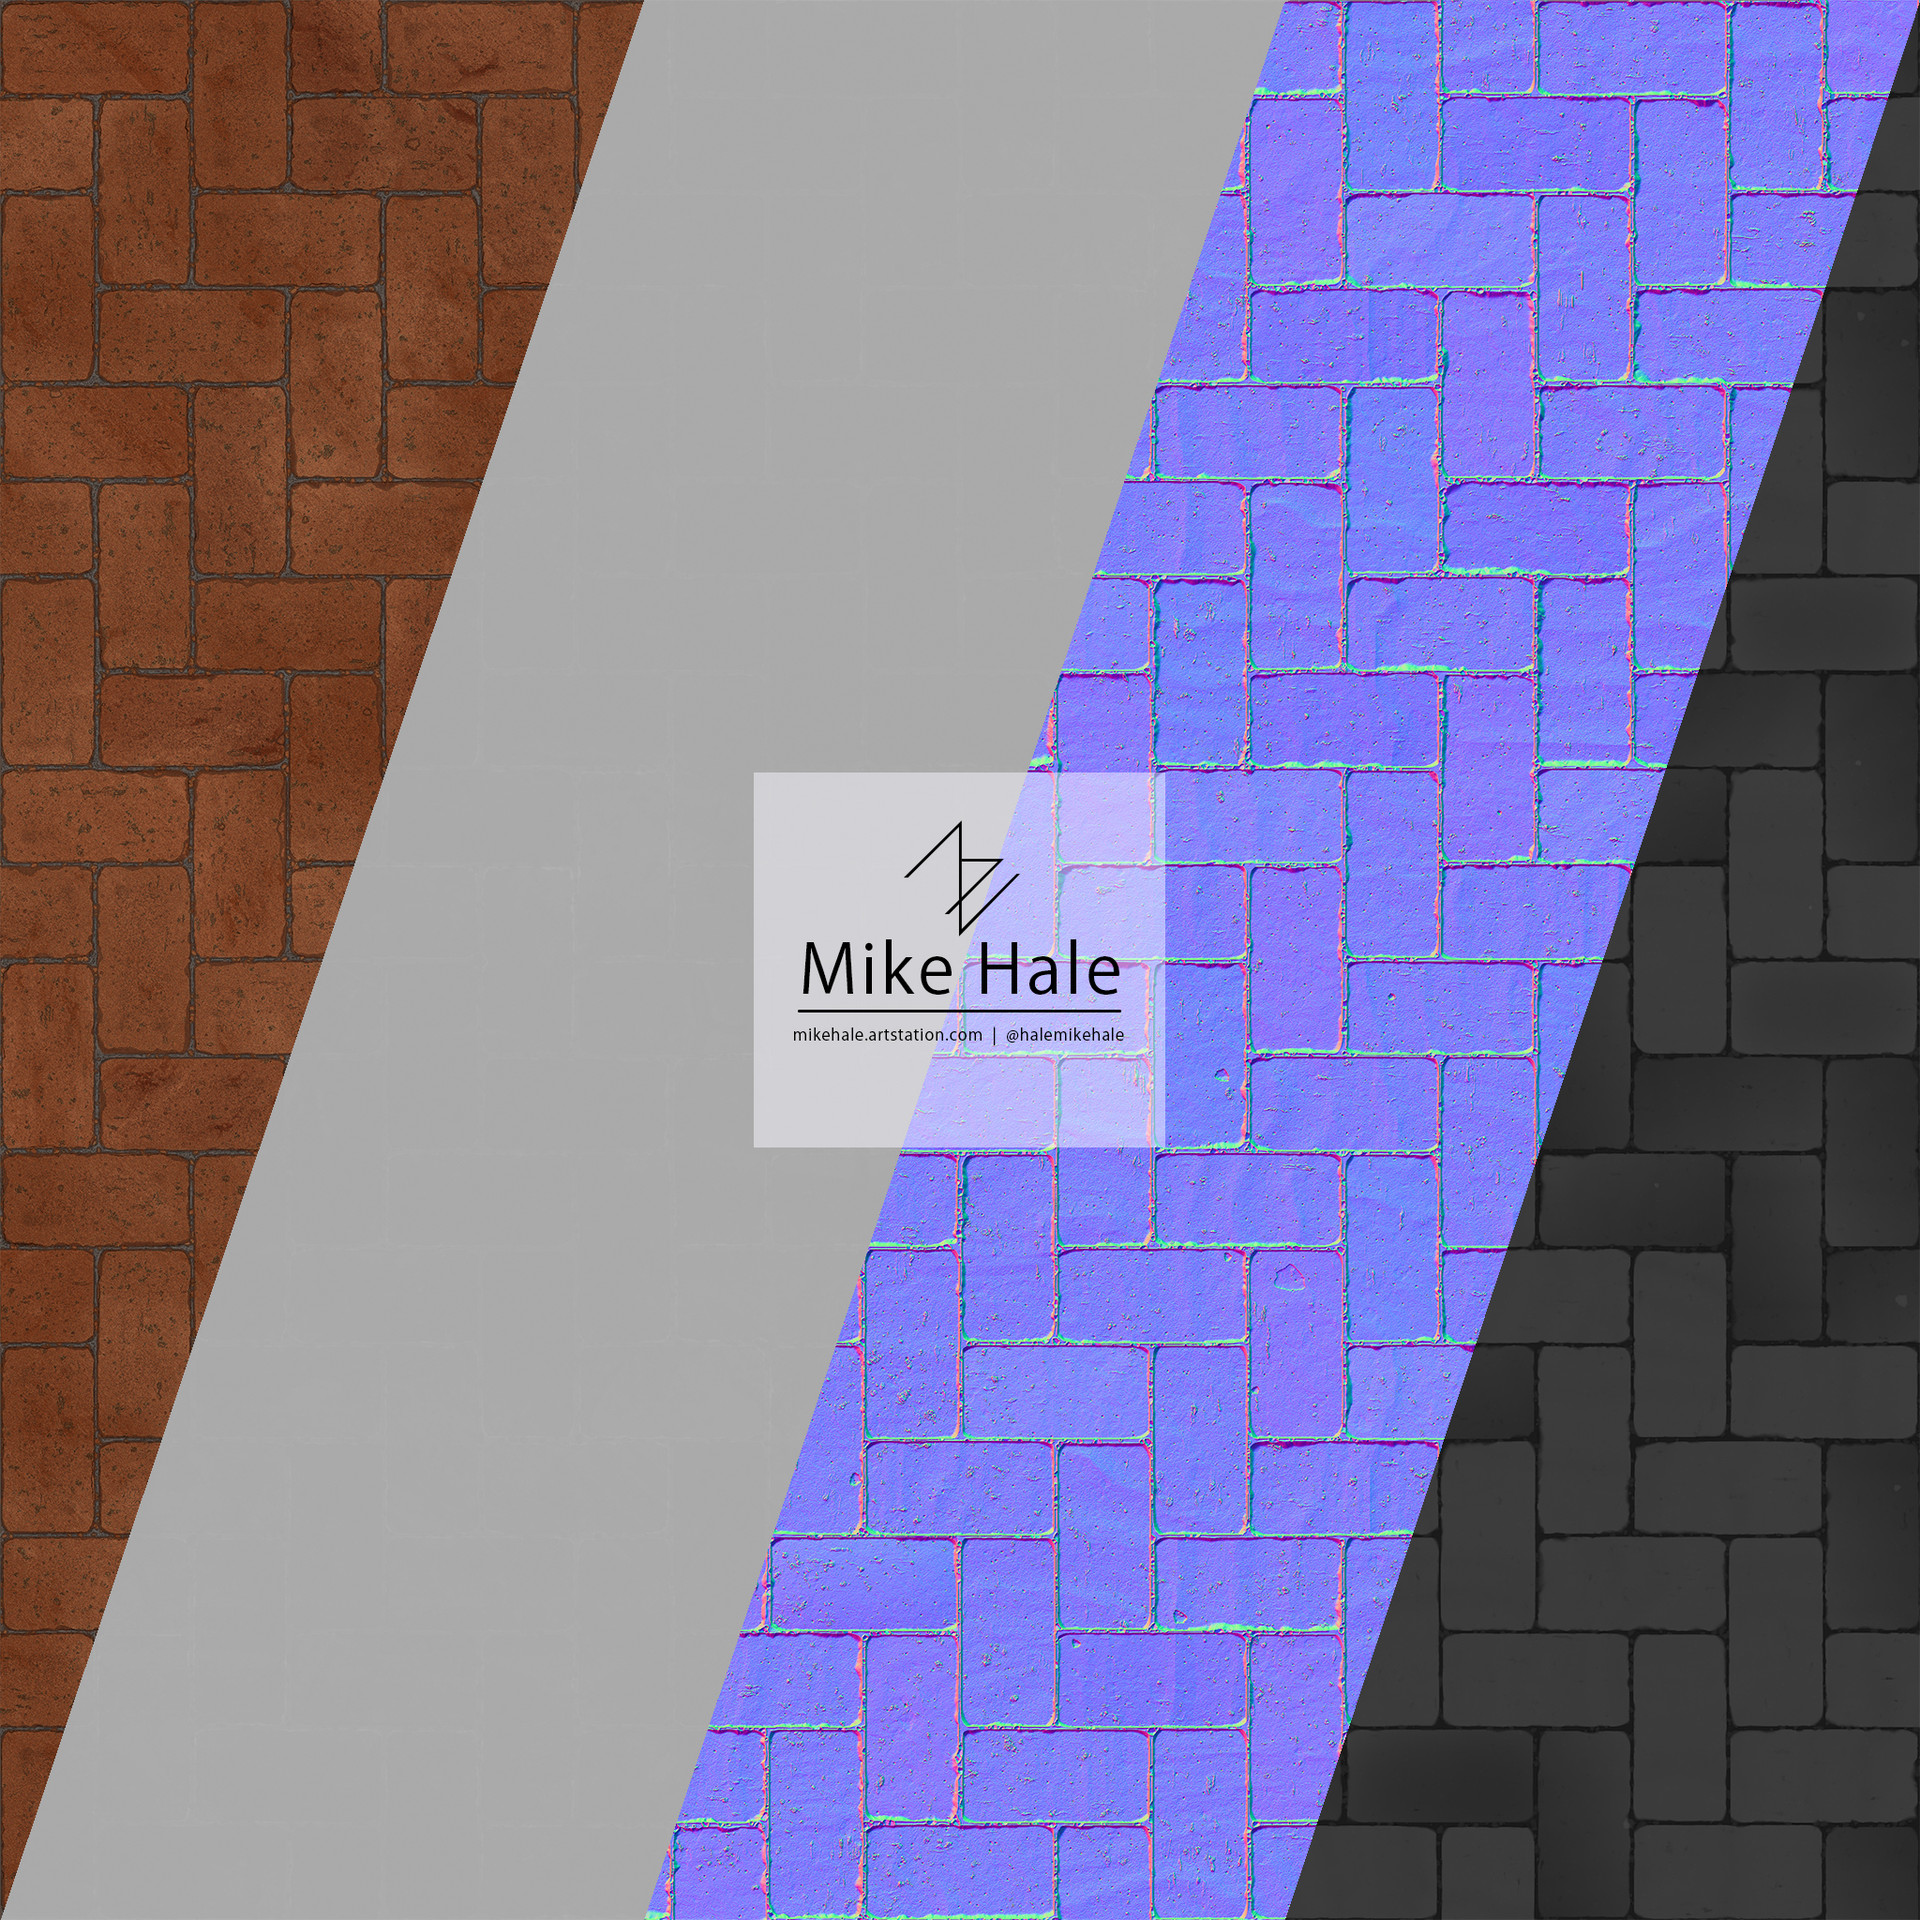 Mike hale herringbone pavement final textures